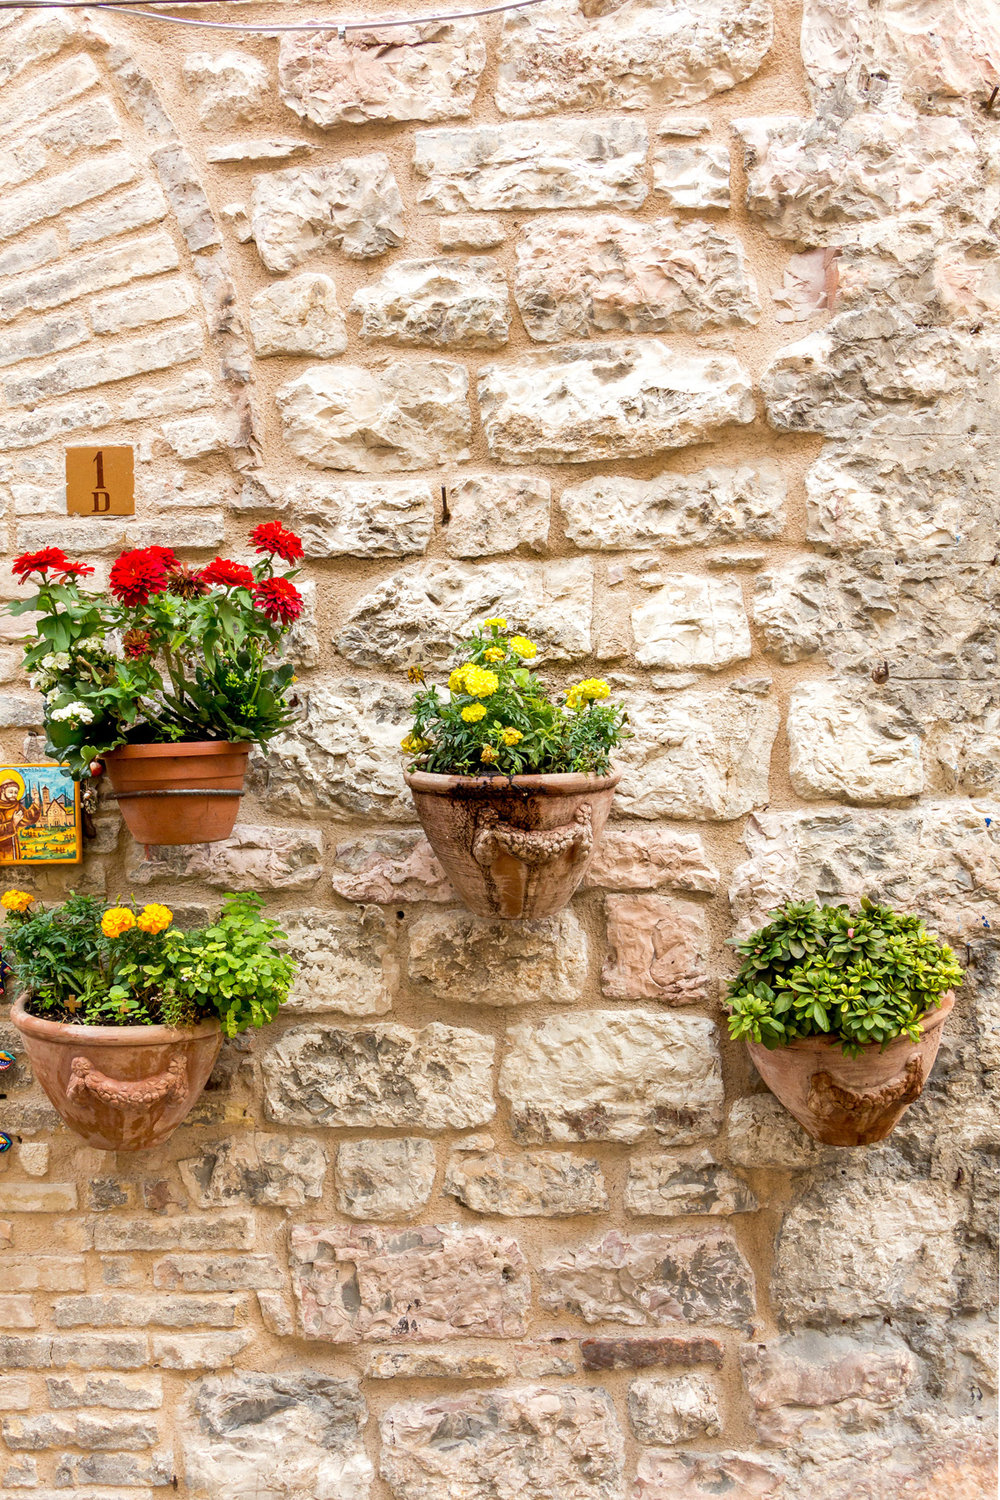 Flower pots in Assisi, Italy